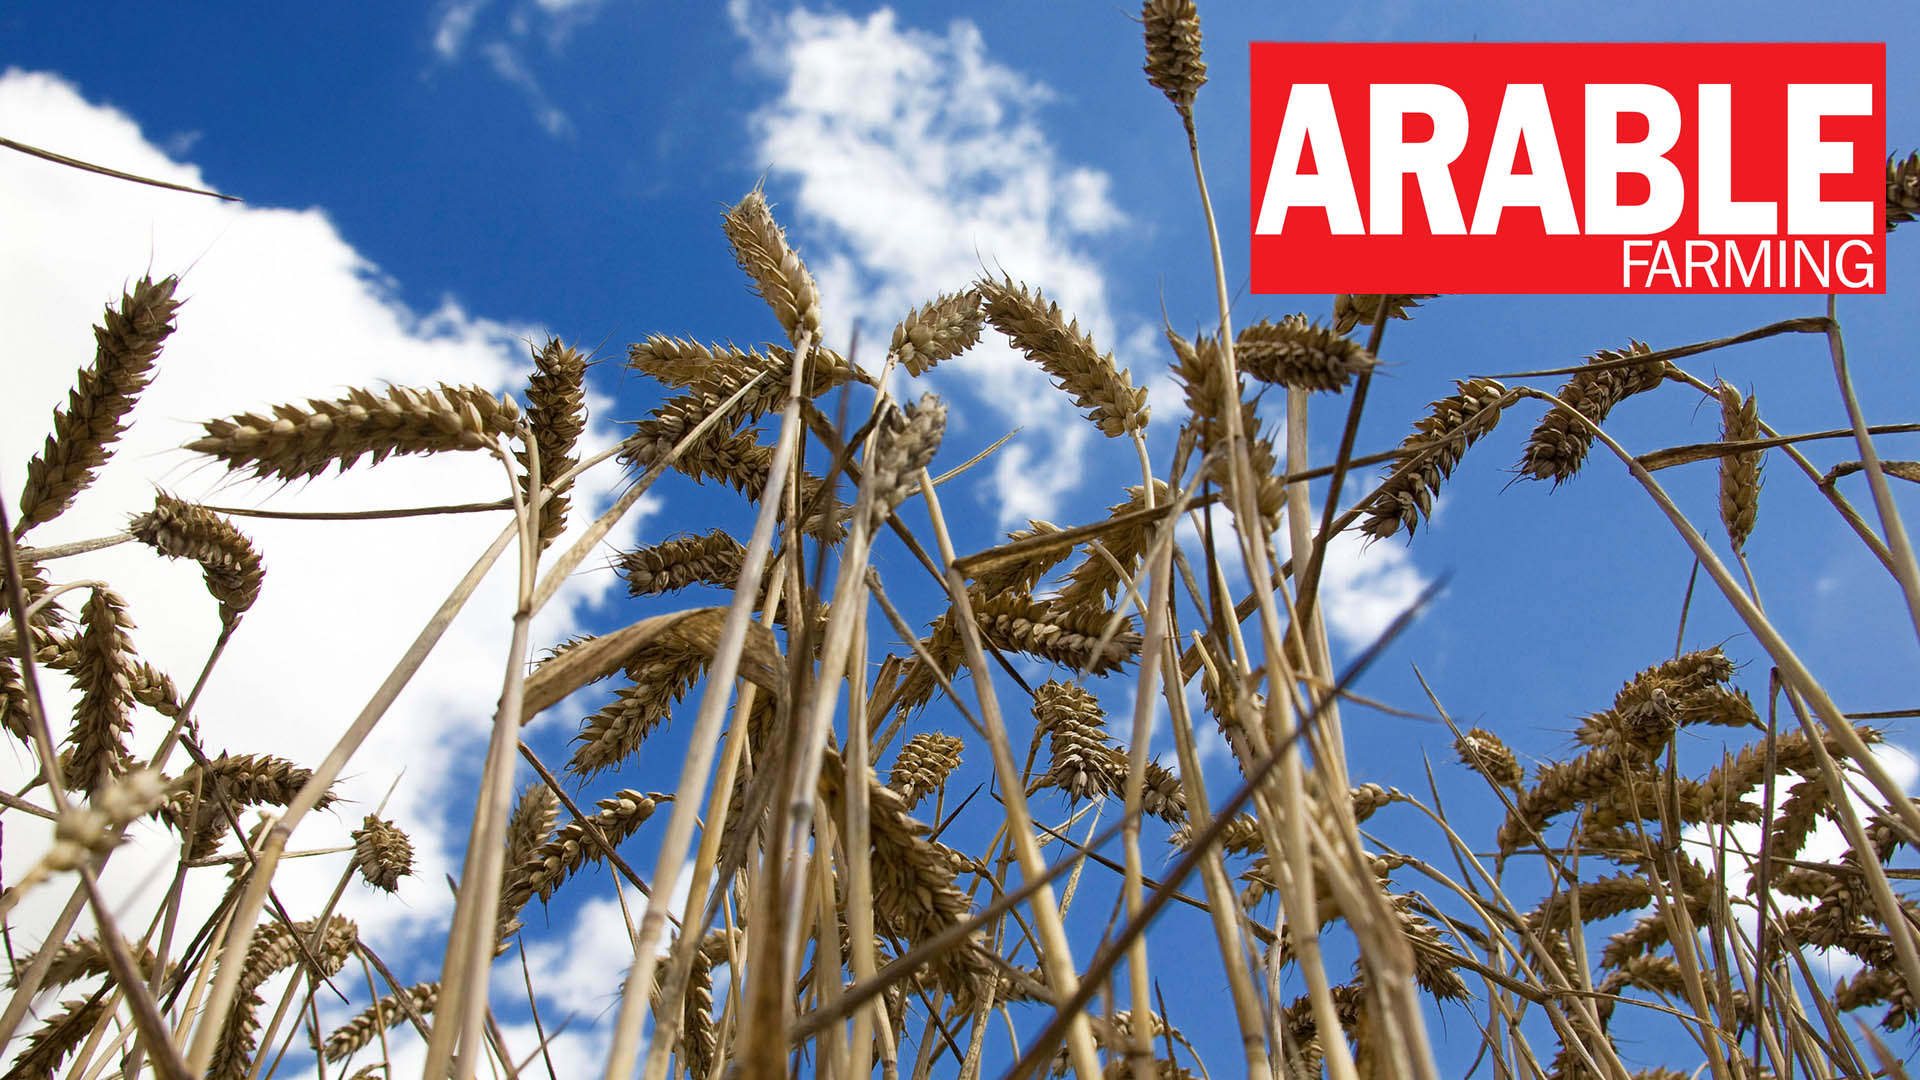 Arable Farming